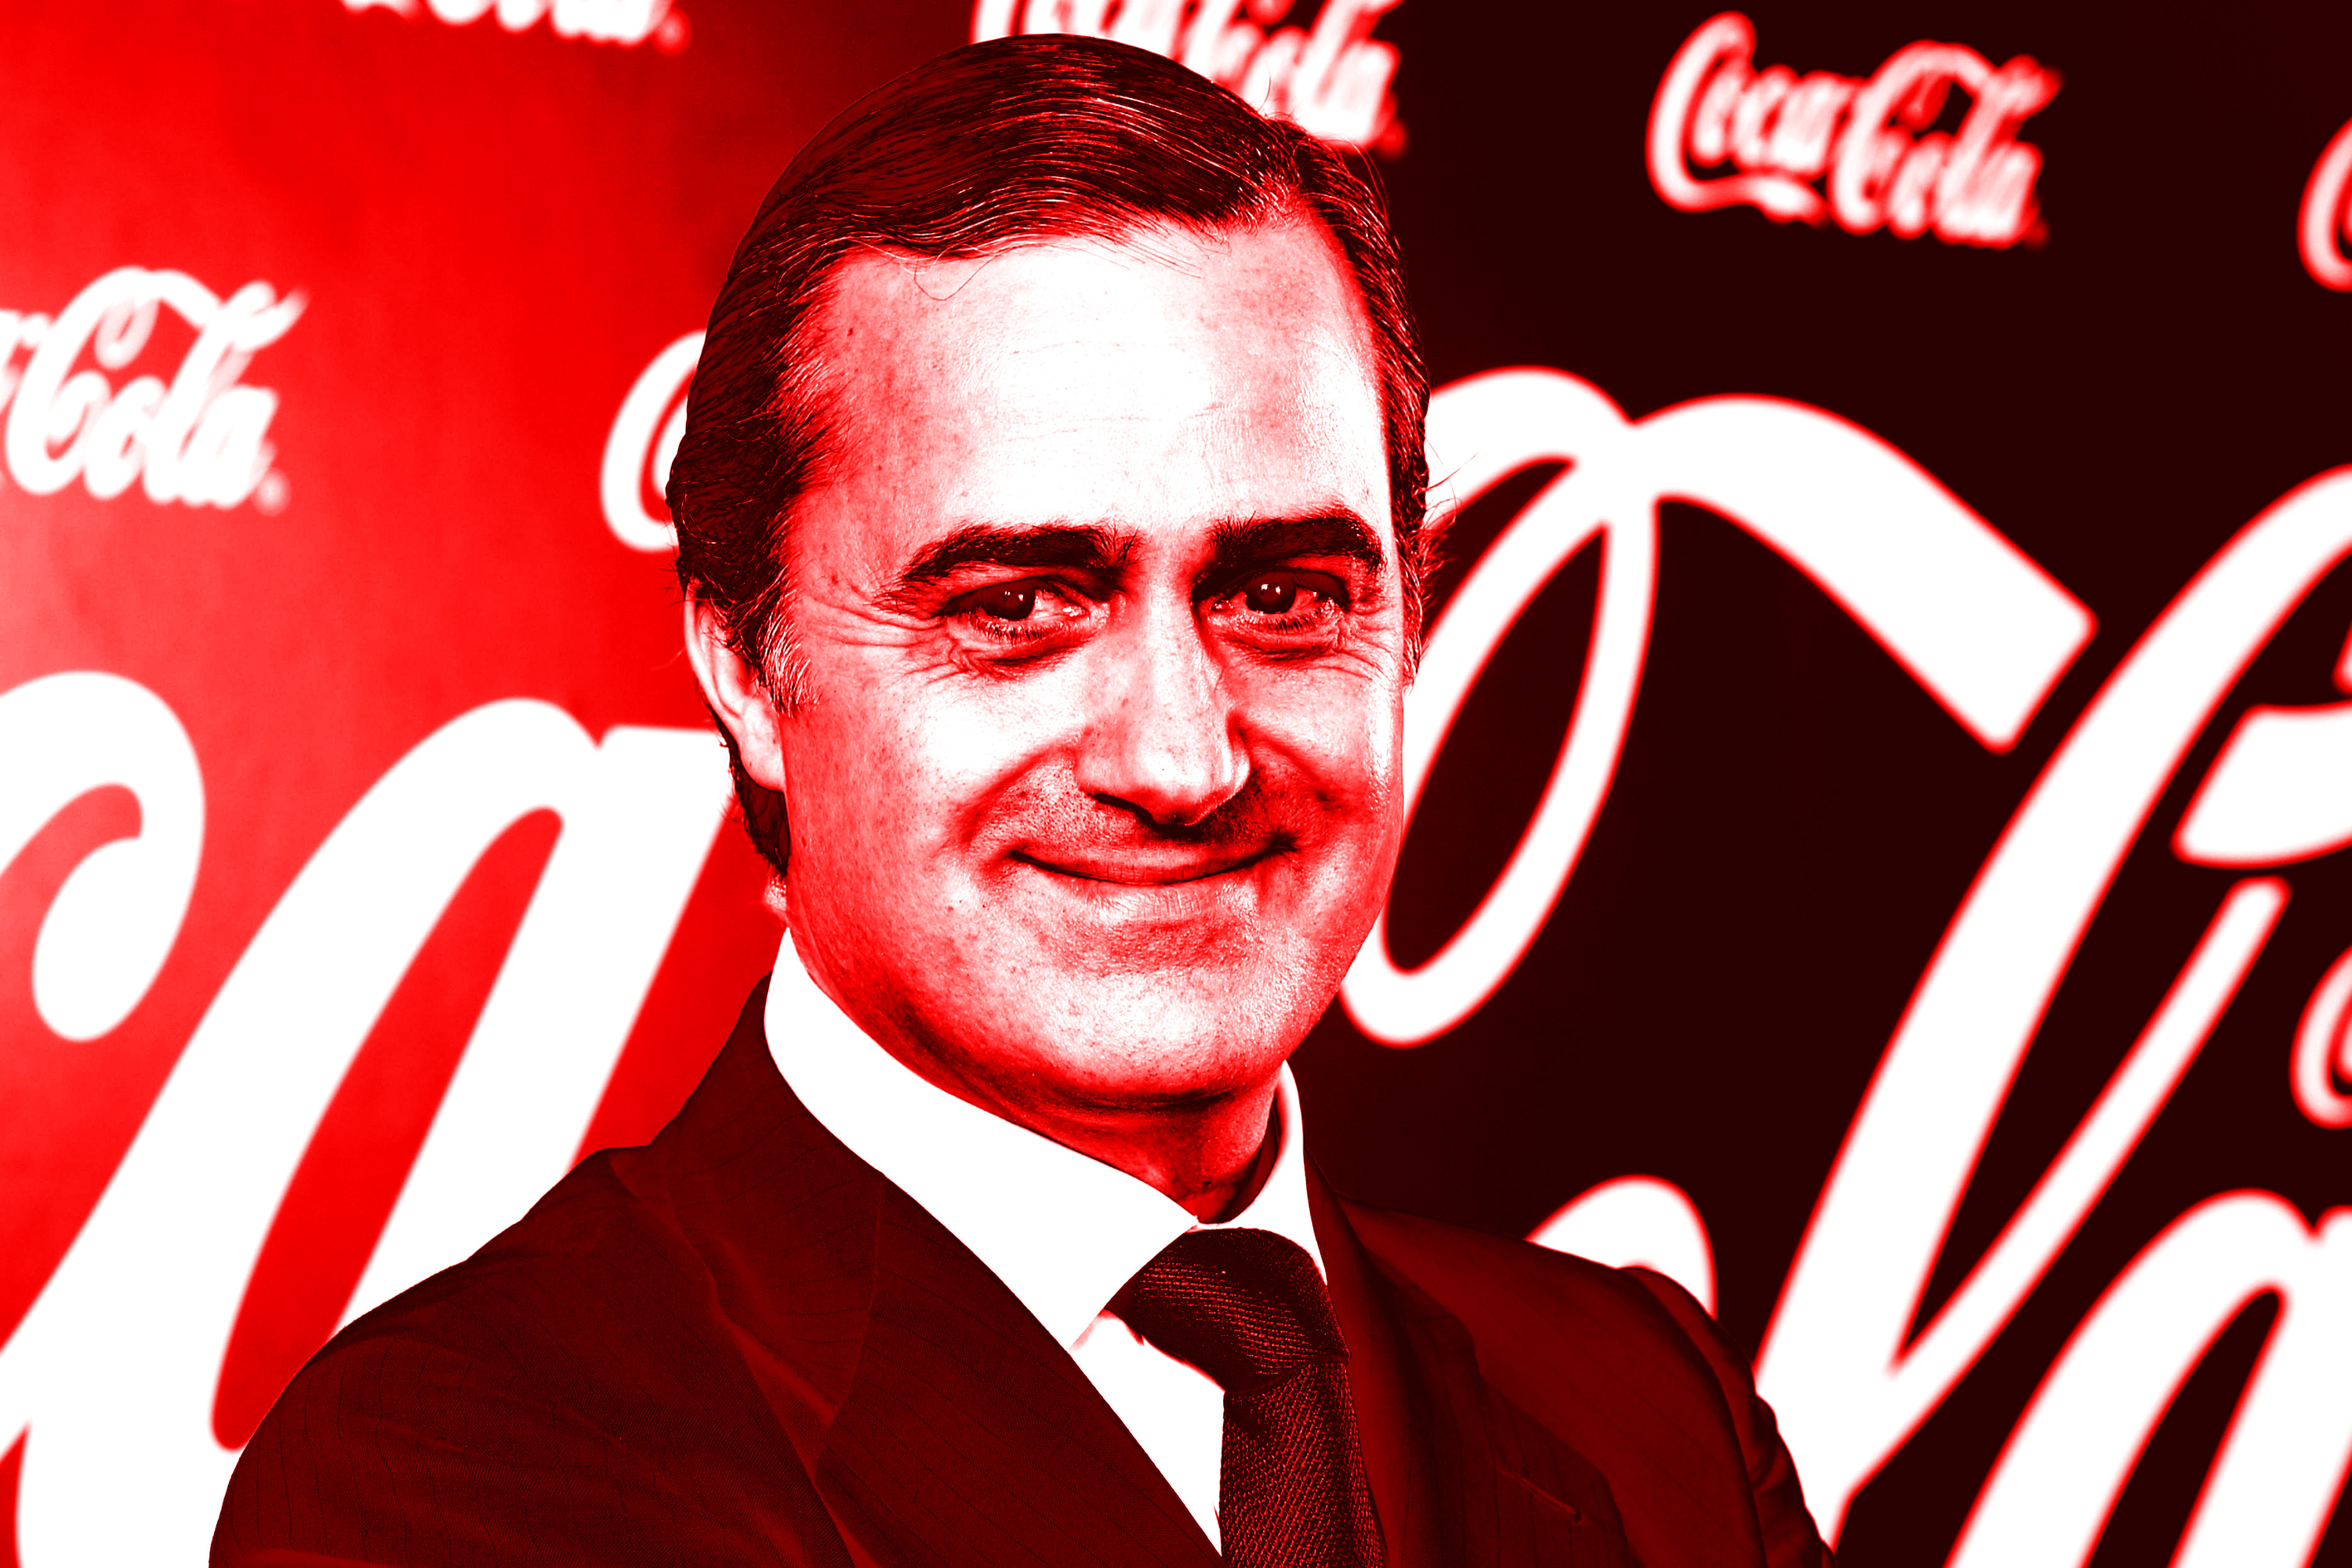 Coca-Cola re-establishes global CMO role after doing away with it two years ago